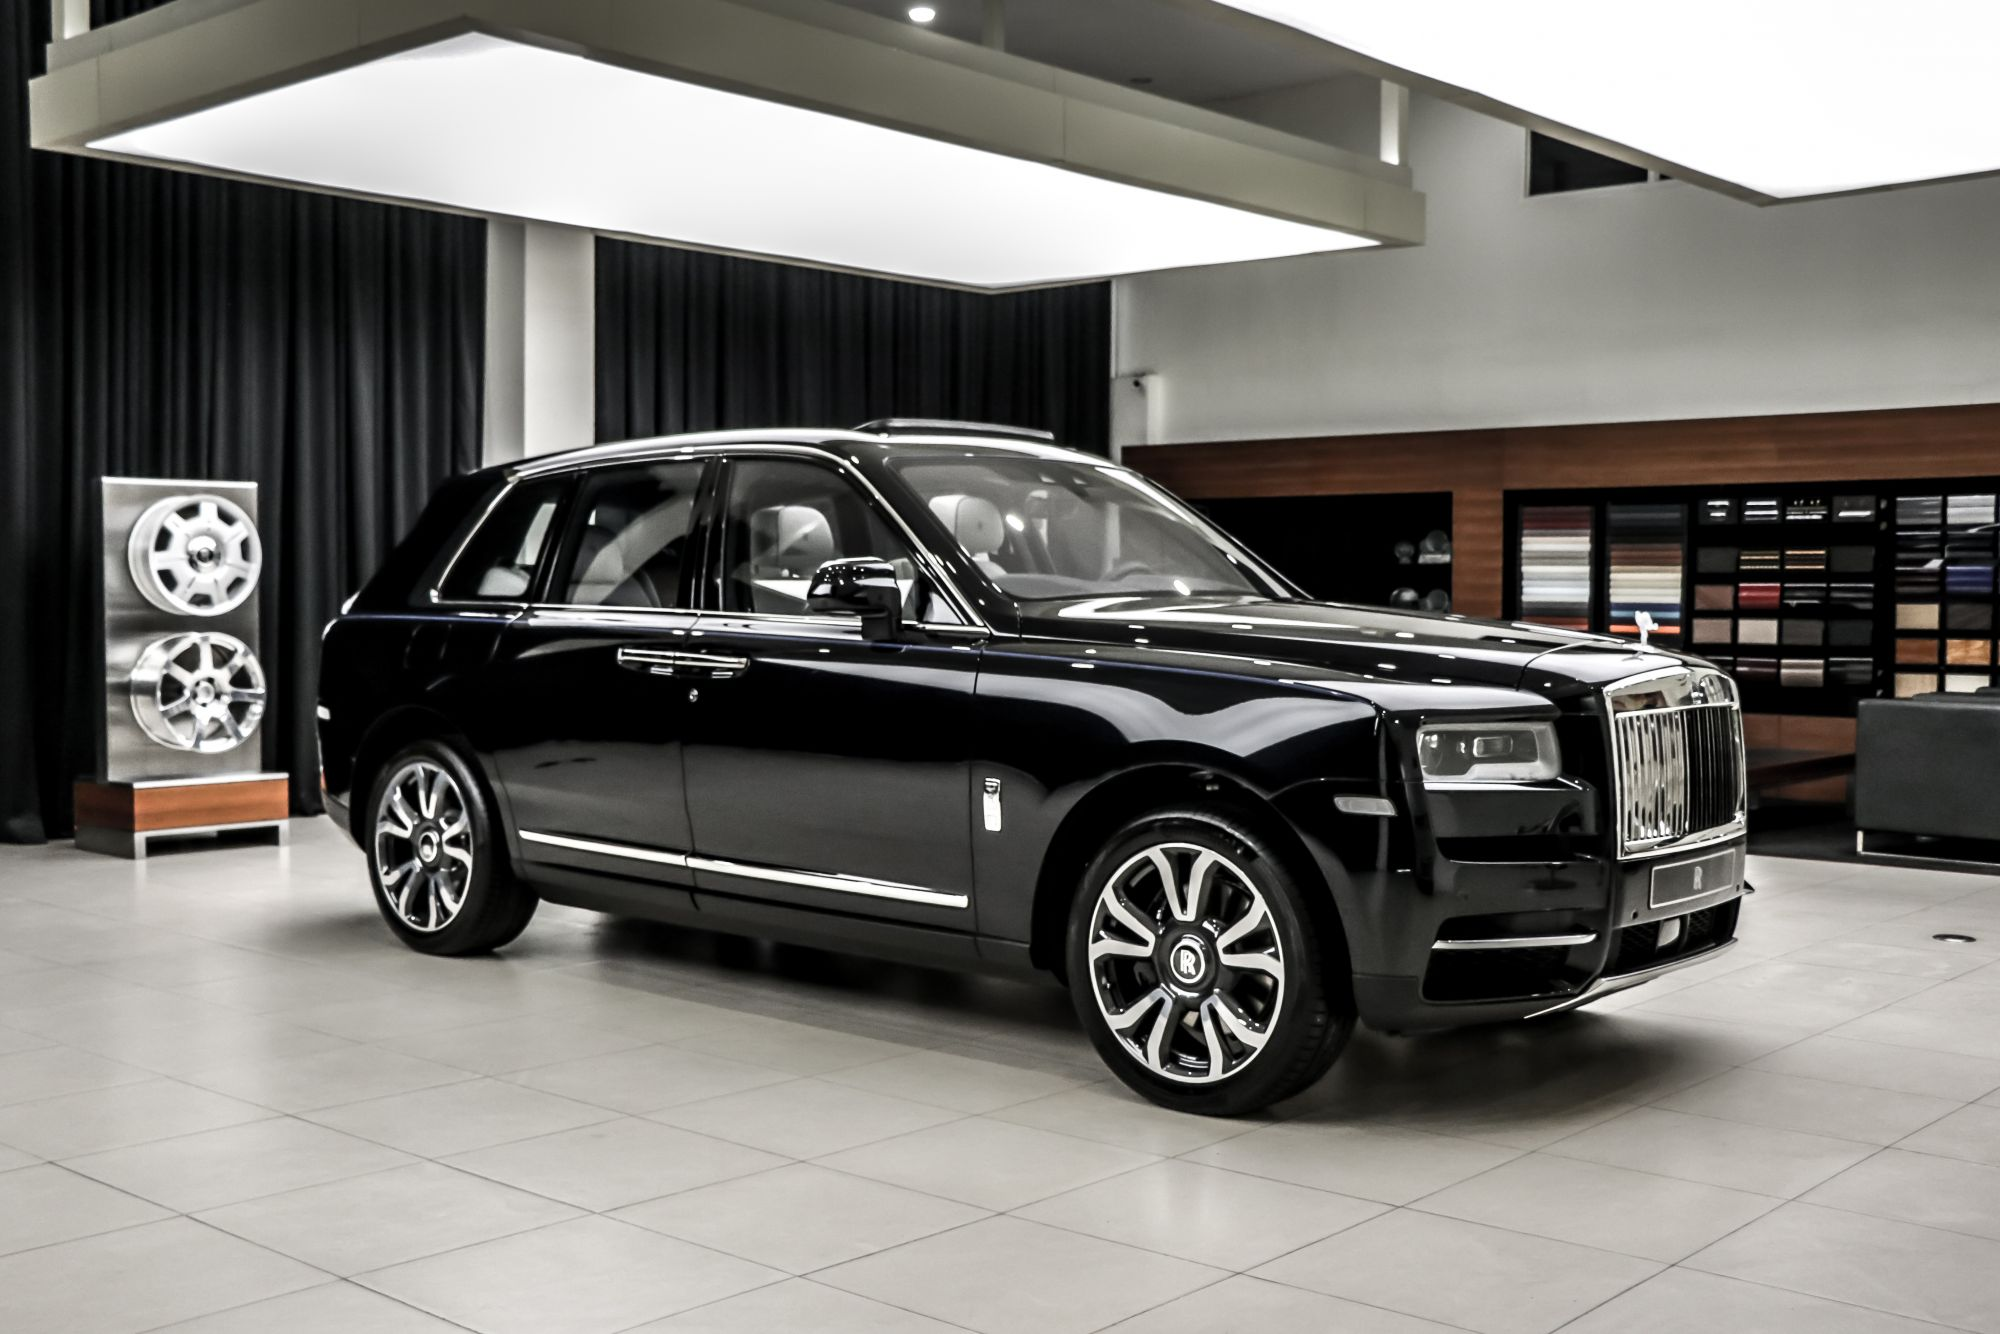 2019 Rolls Royce Cullinan: Design, Powertrain, Release >> A Look Into The New And Coveted Rolls Royce Cullinan